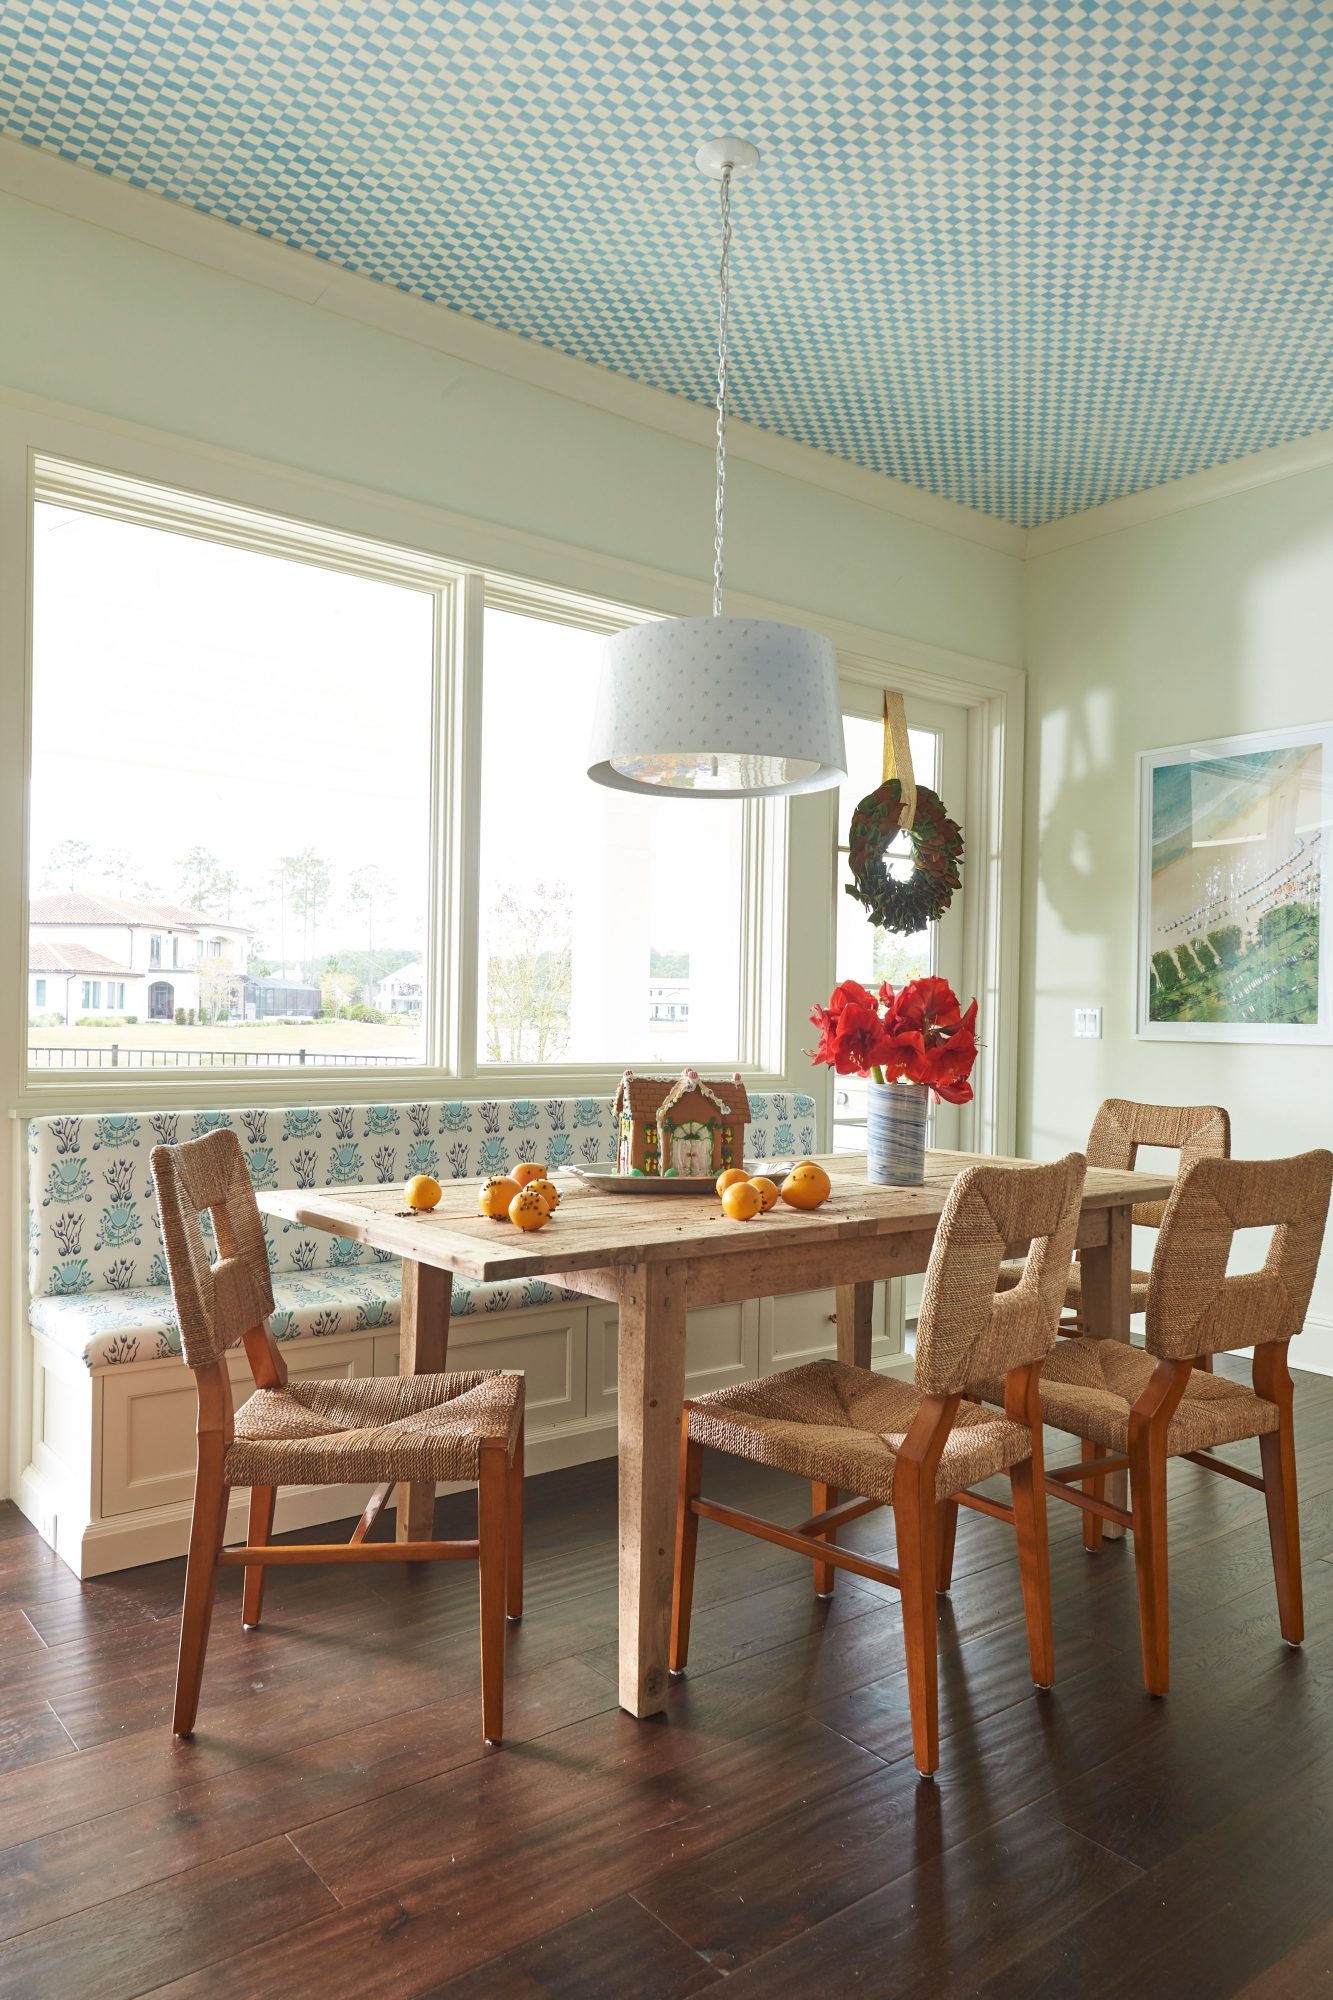 Andrew Howard Home Decorated for Christmas Breakfast Nook